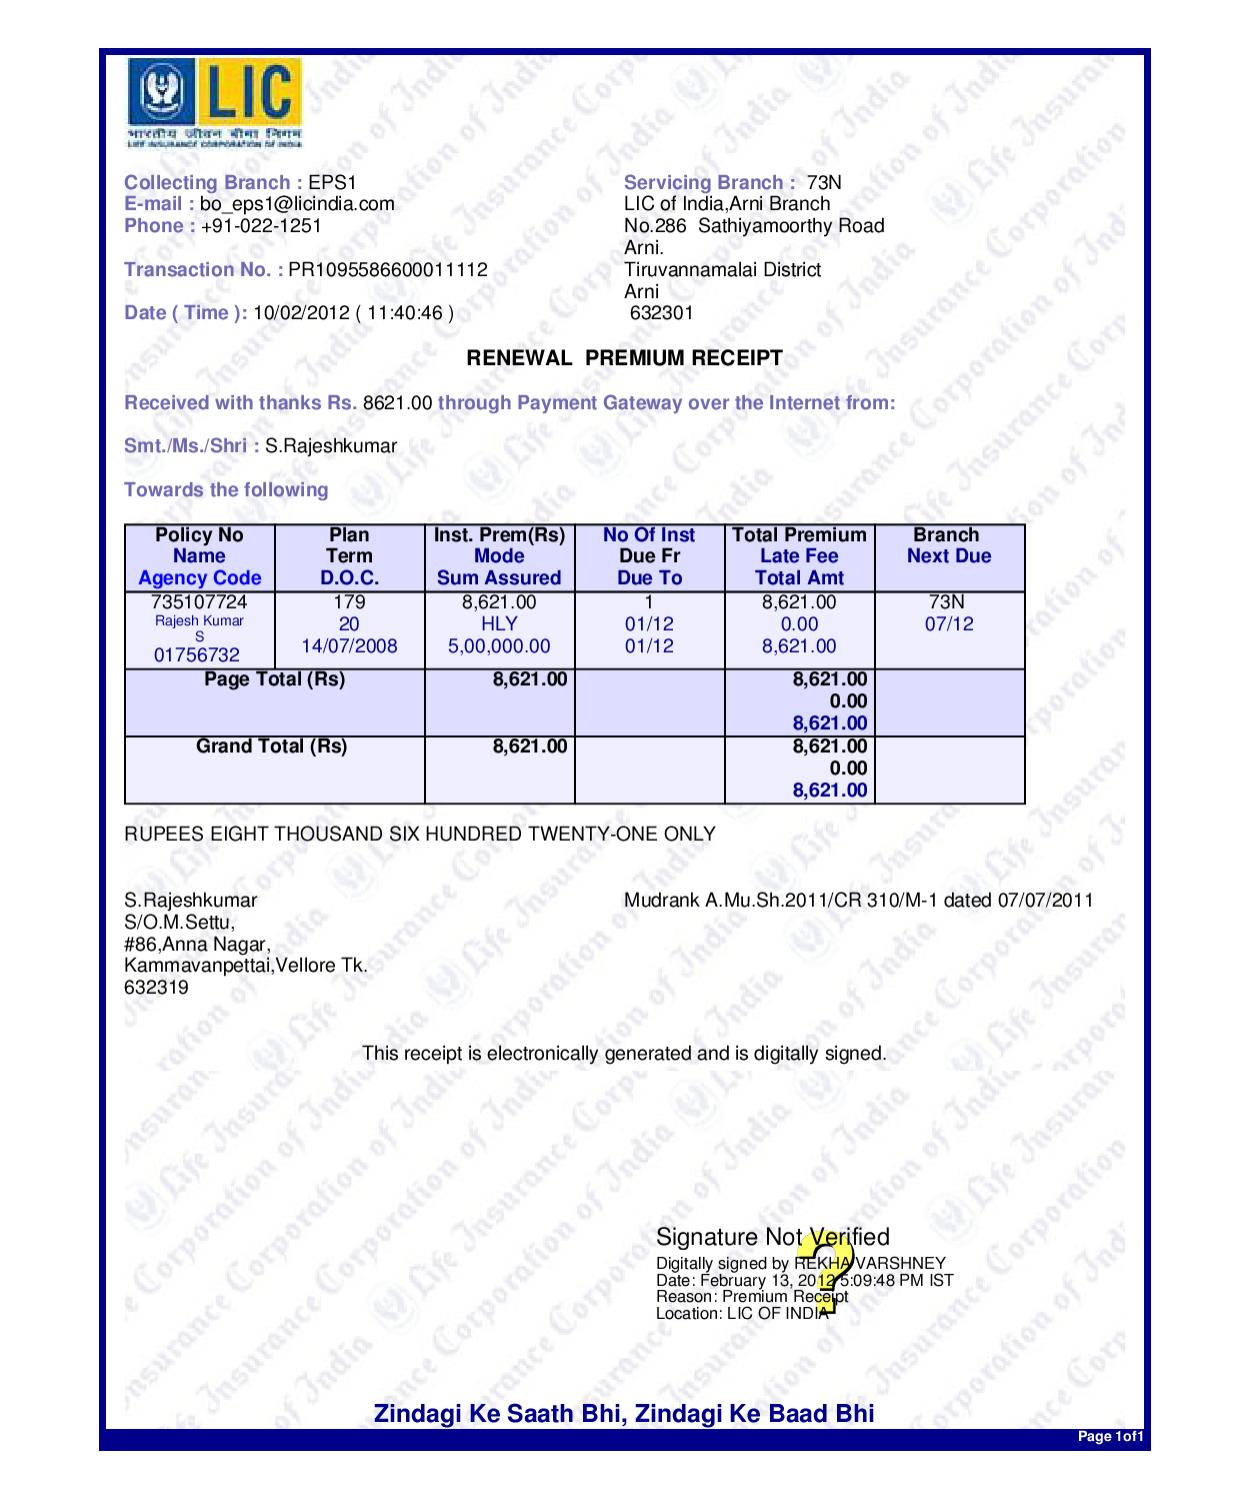 Ethnic Food Restaurant Business Plan Sample Financial Sample By Rajesh Kumar Page 1 Issuu